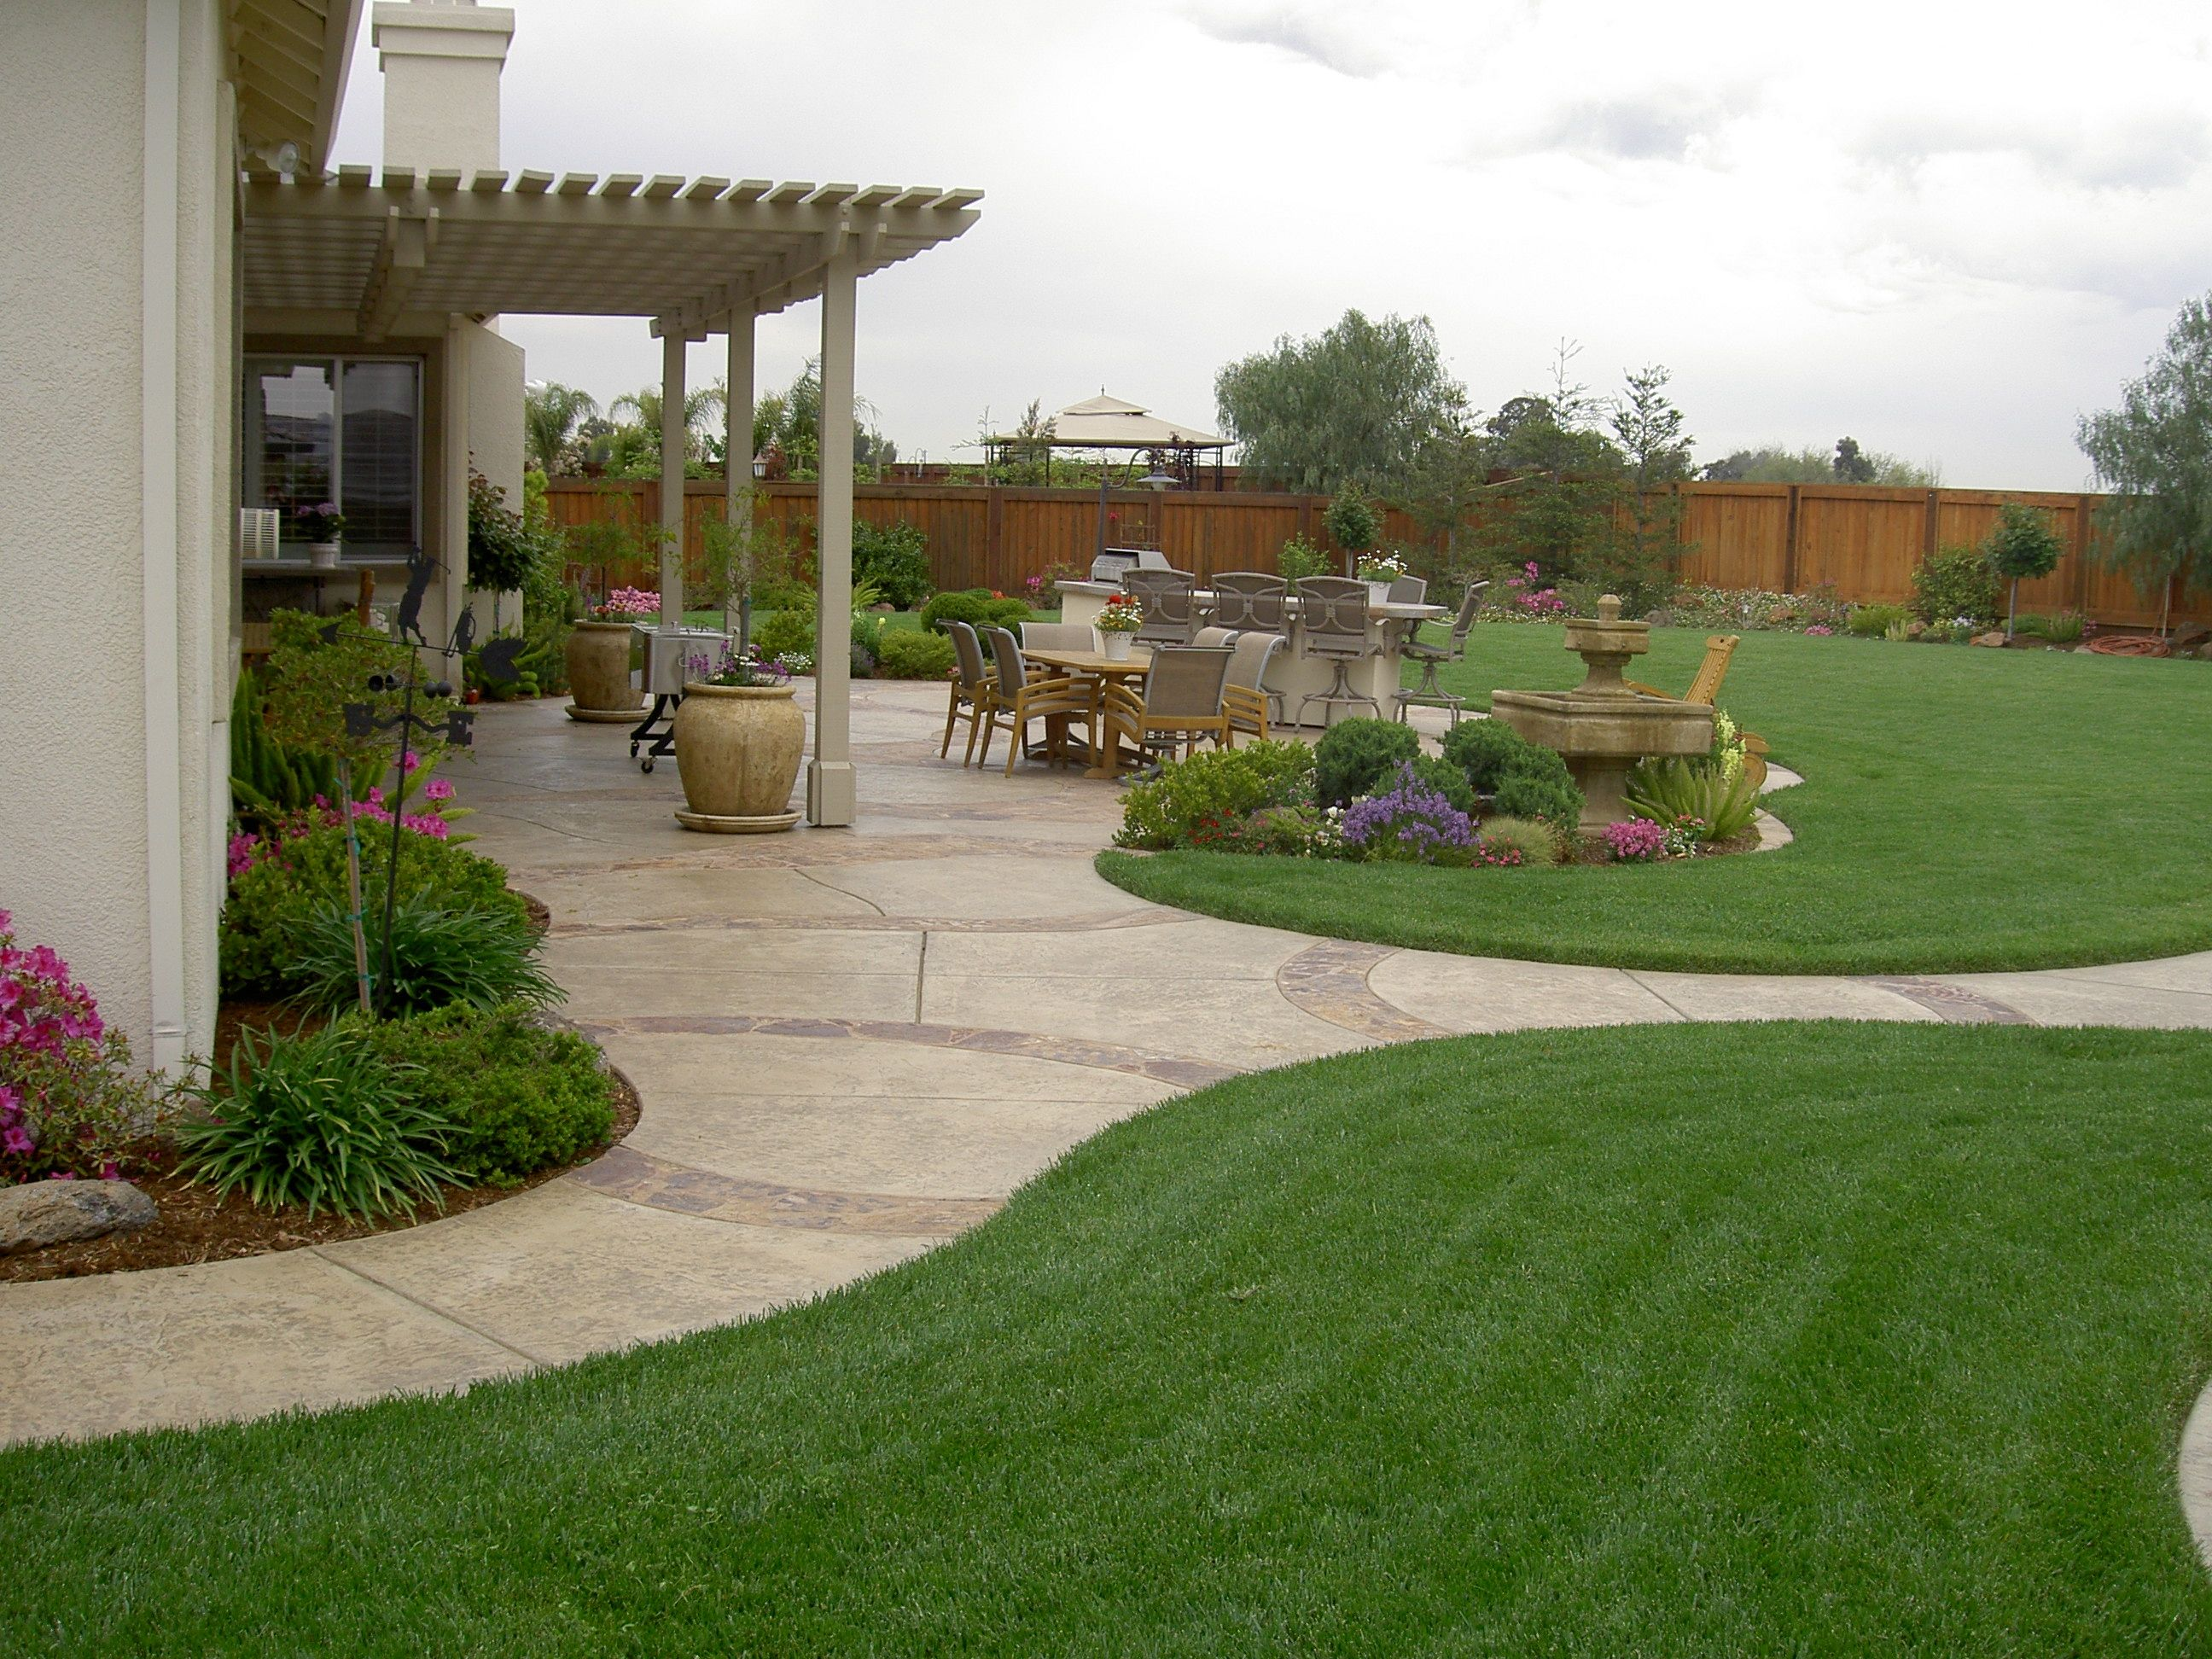 20 Awesome Landscaping Ideas For Your Backyard Gardens Outdoor